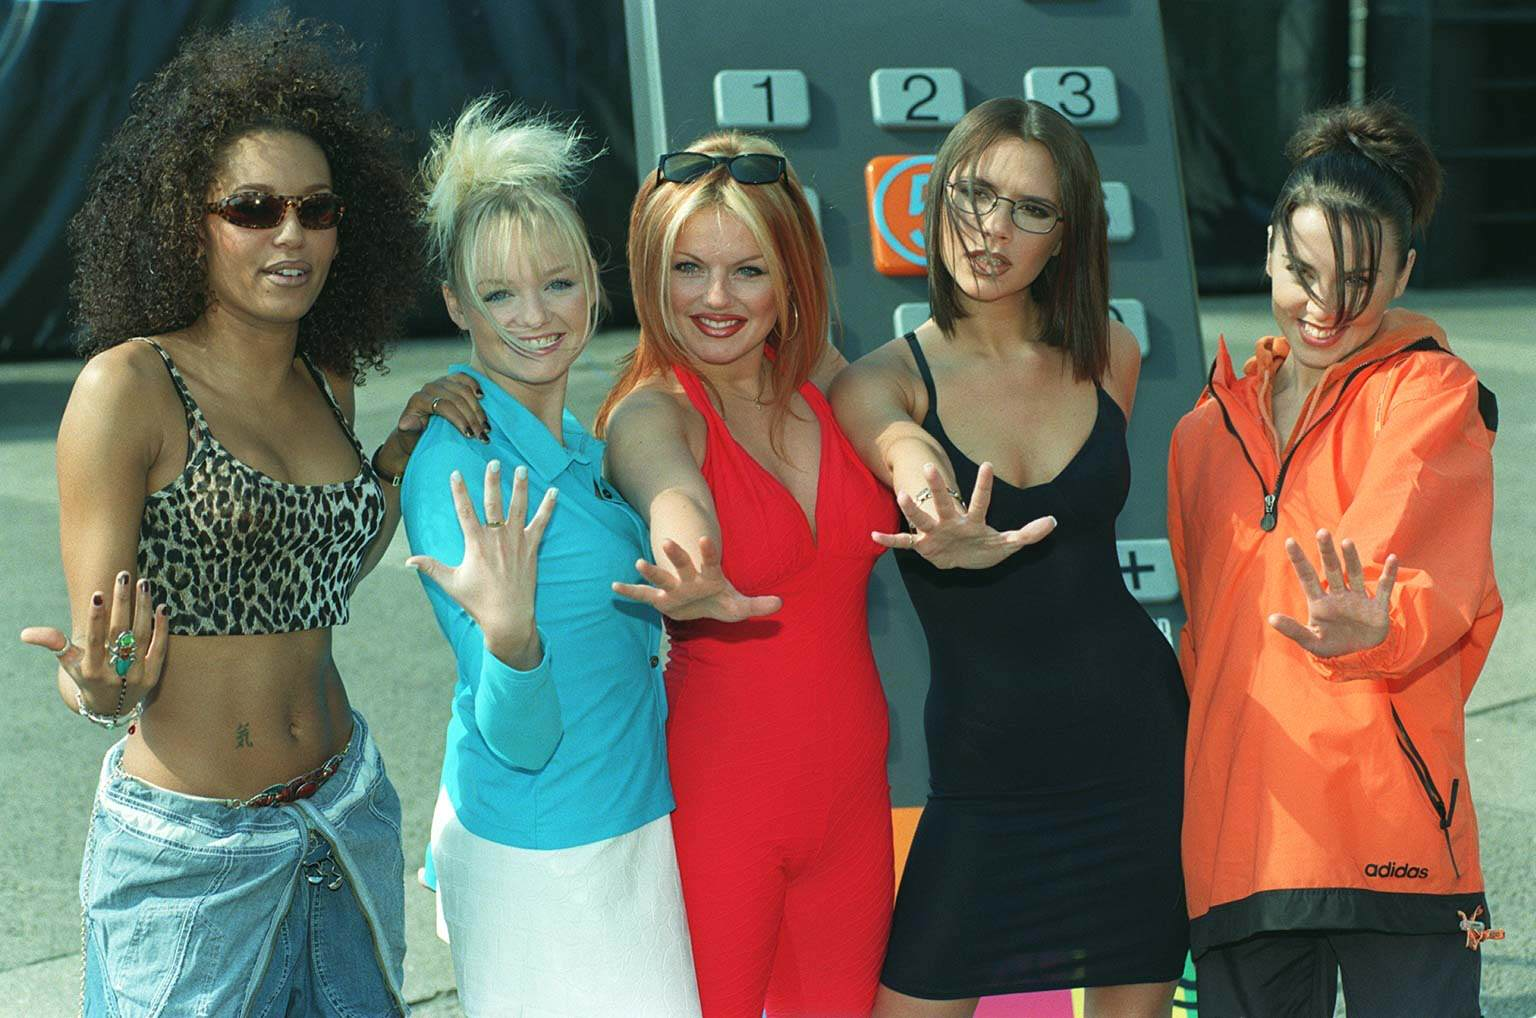 PA 1039790 Victoria Beckham Makes Shocking Claim About Her Time In Spice Girls